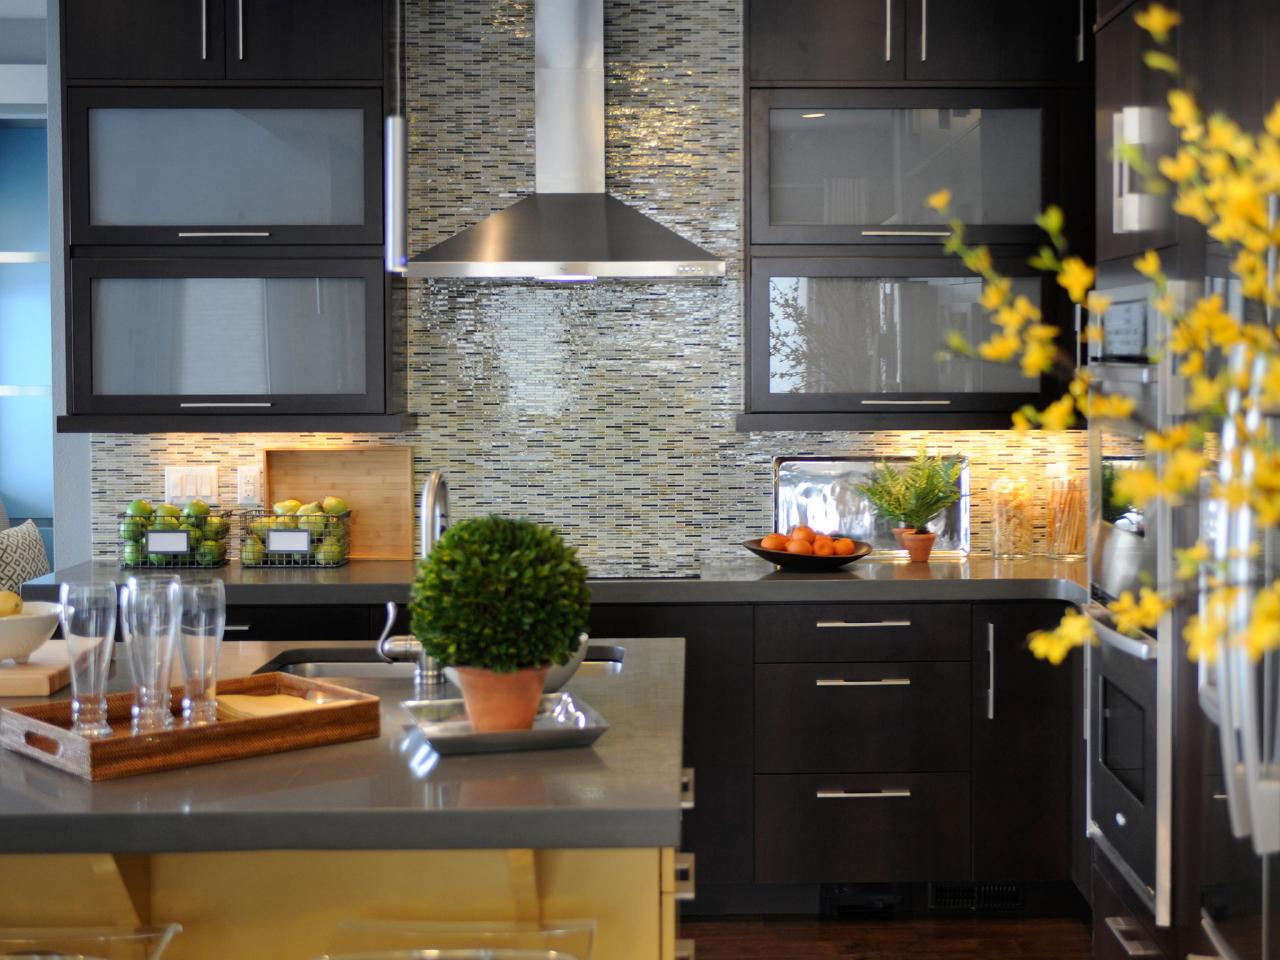 Kitchen Tile Backsplash Ideas.Kitchen Backsplash Tile Ideas Hgtv